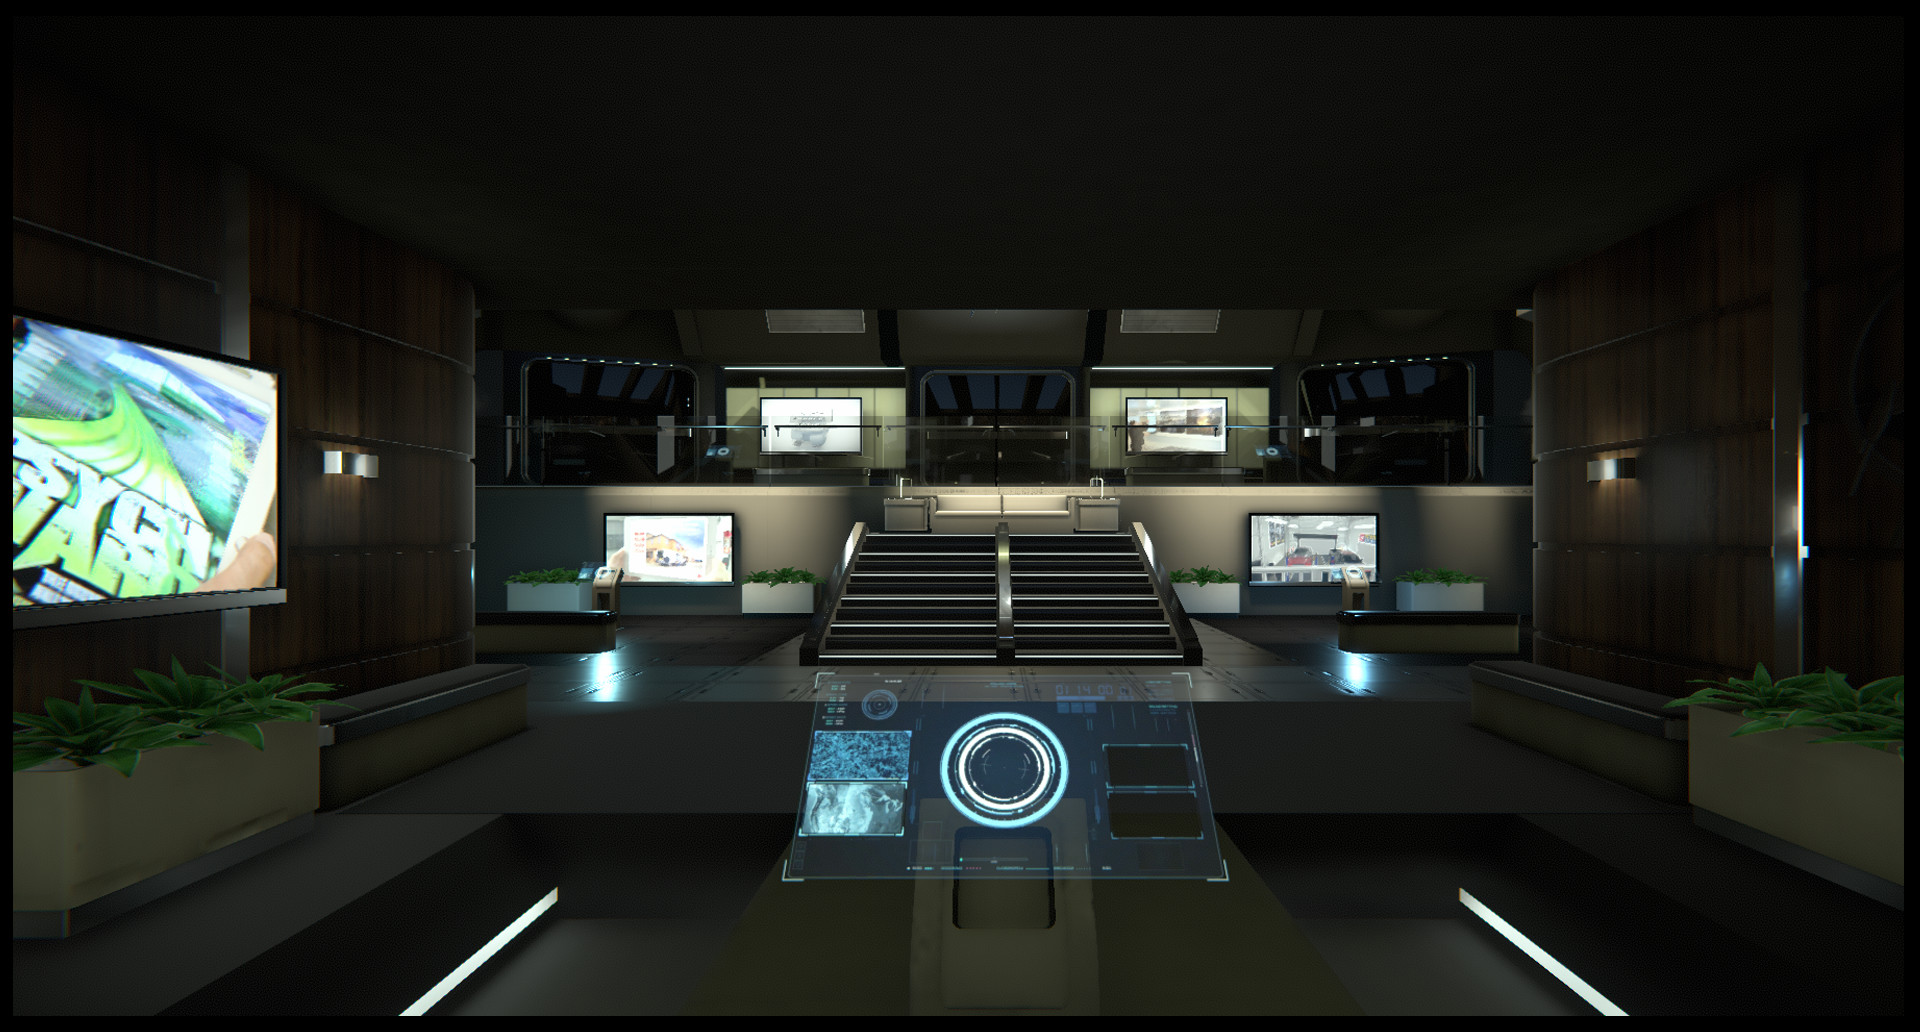 Scifi Presentation Environment